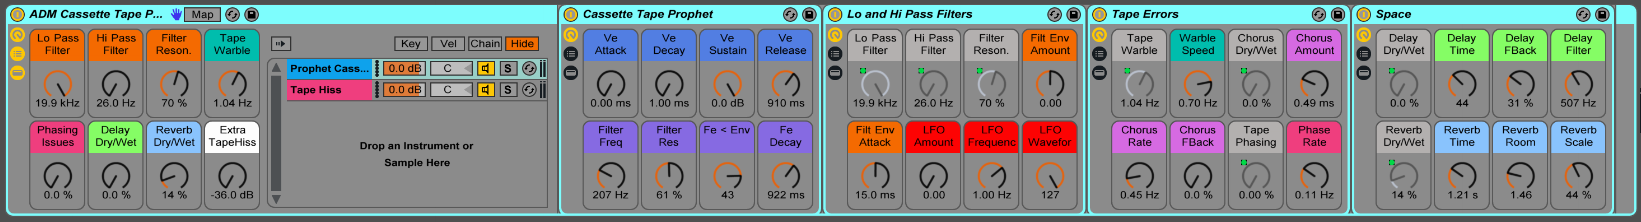 Each of the Cassette Tape Prophet Ableton Live Instruments allow for complete control and customization.